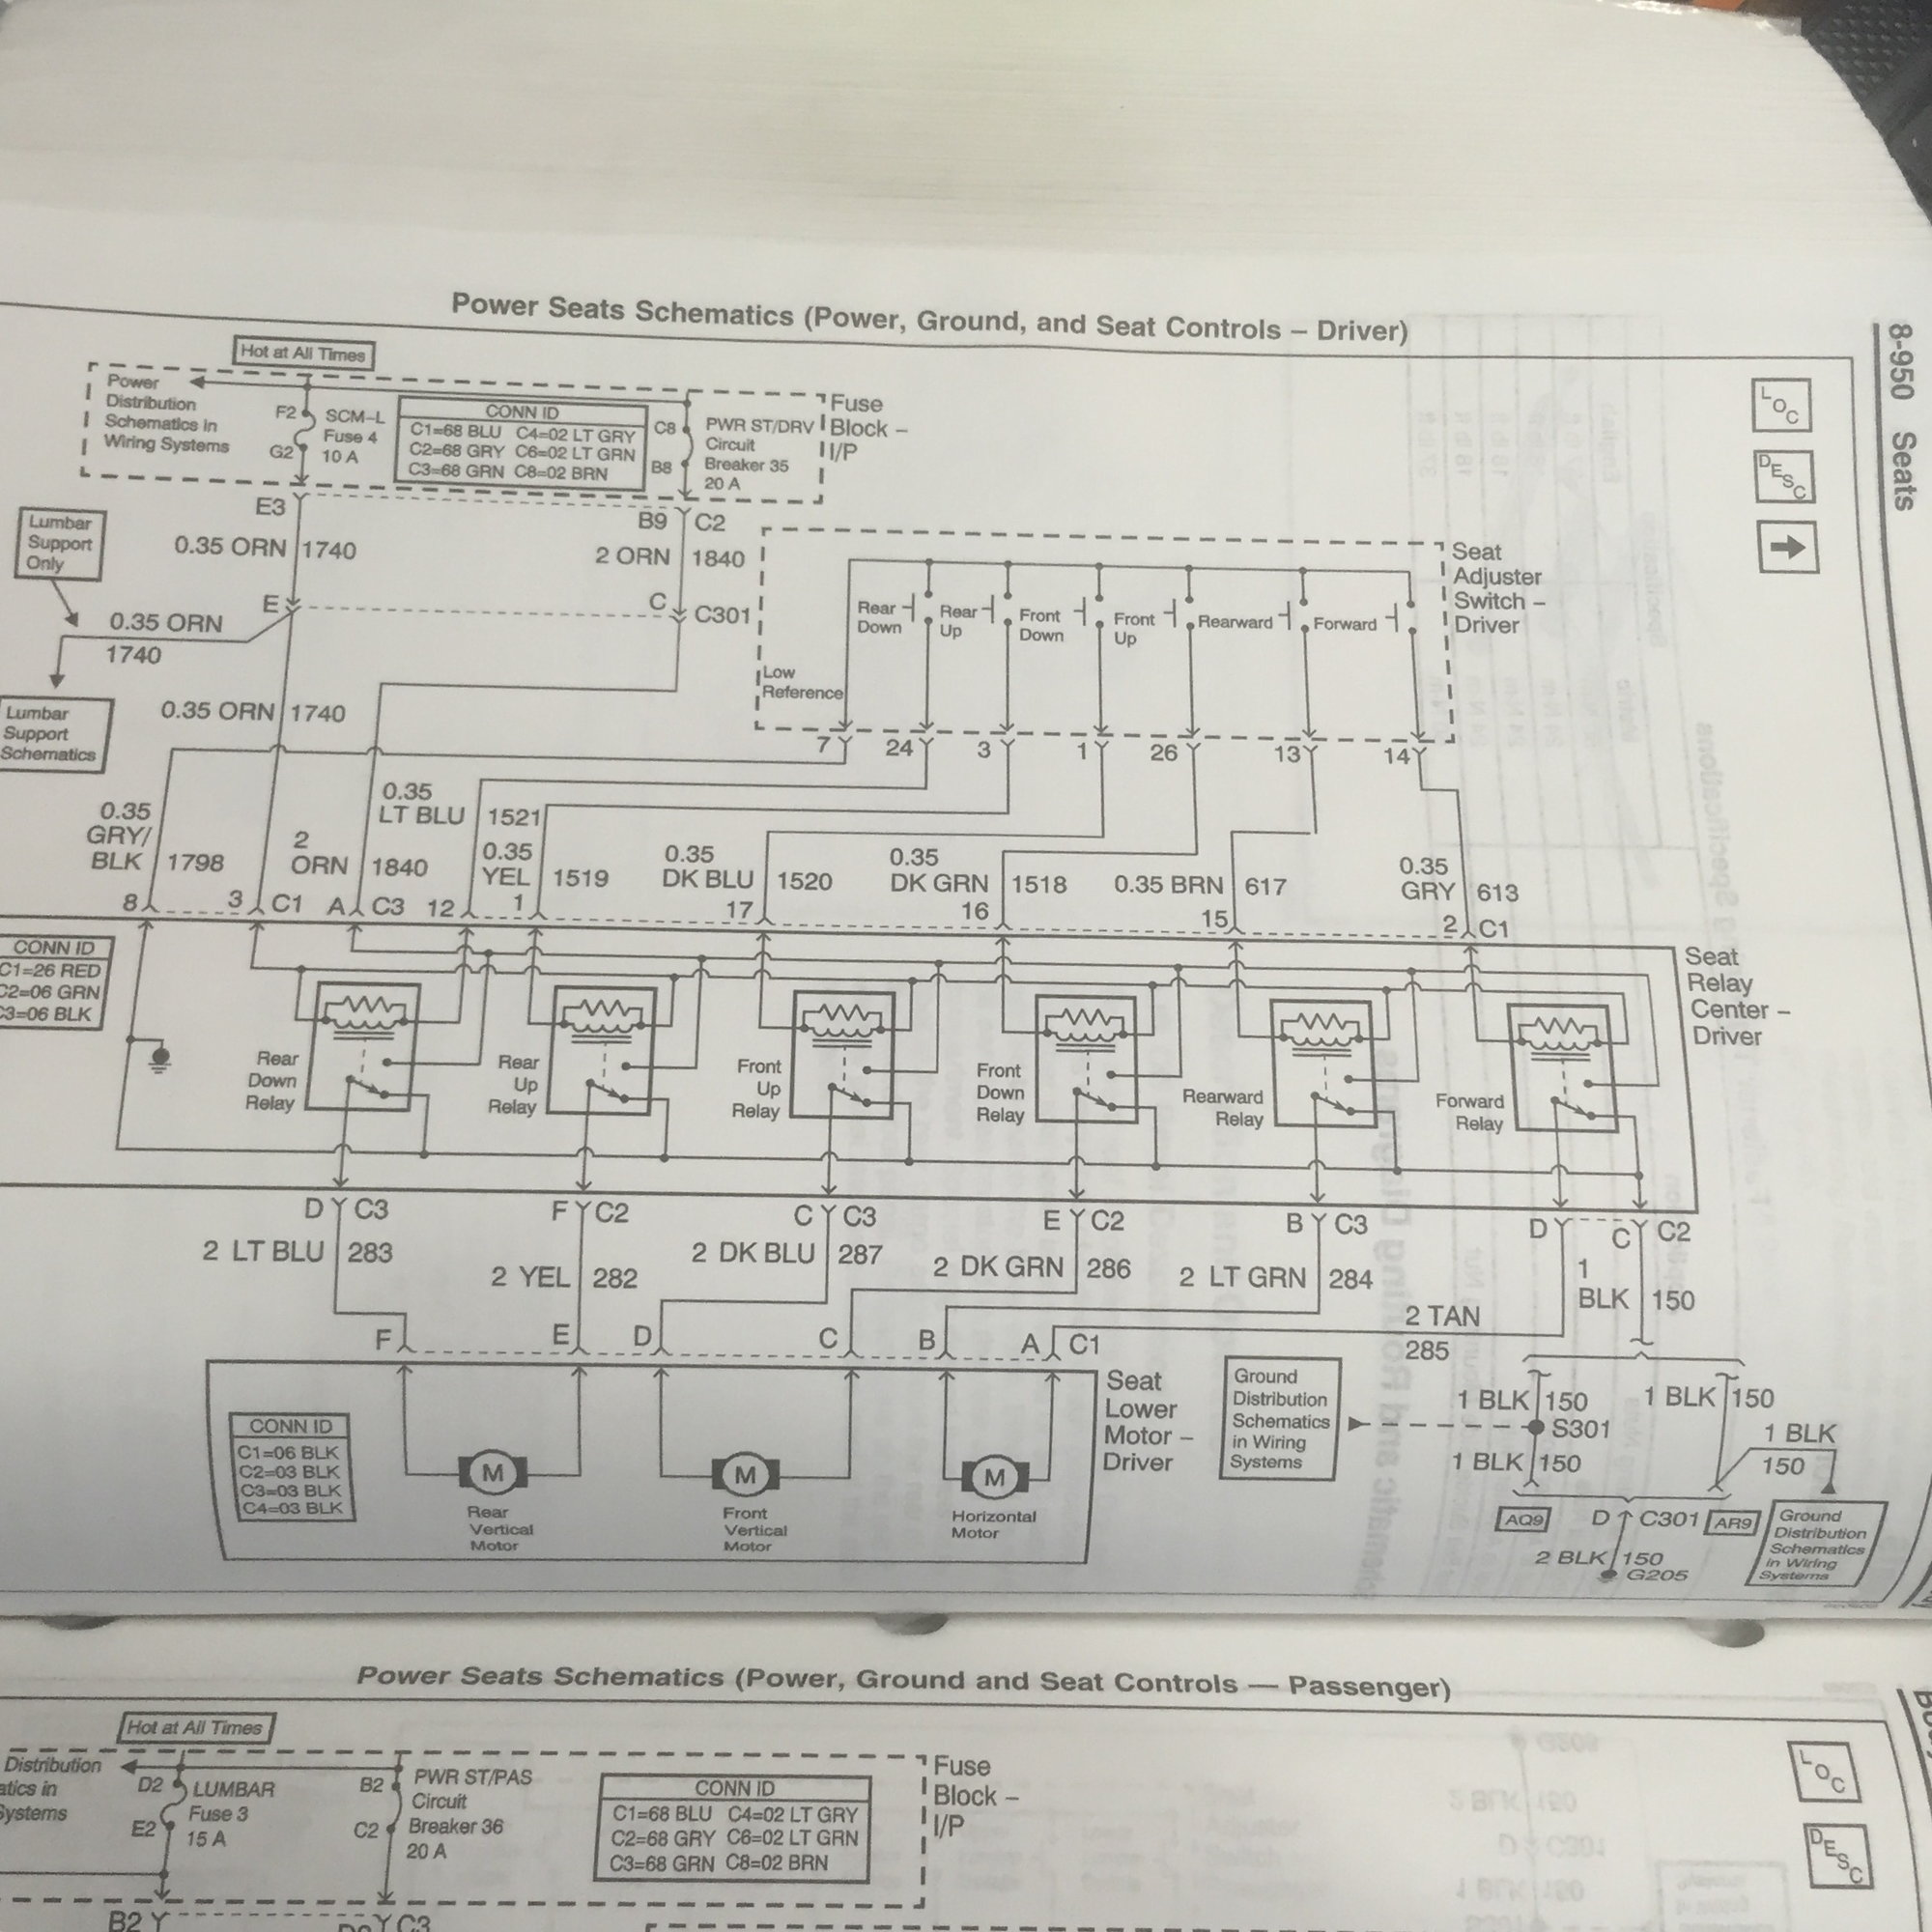 1979 Corvette Wiring Diagram C4 Corvette Interior Wiring Diagram